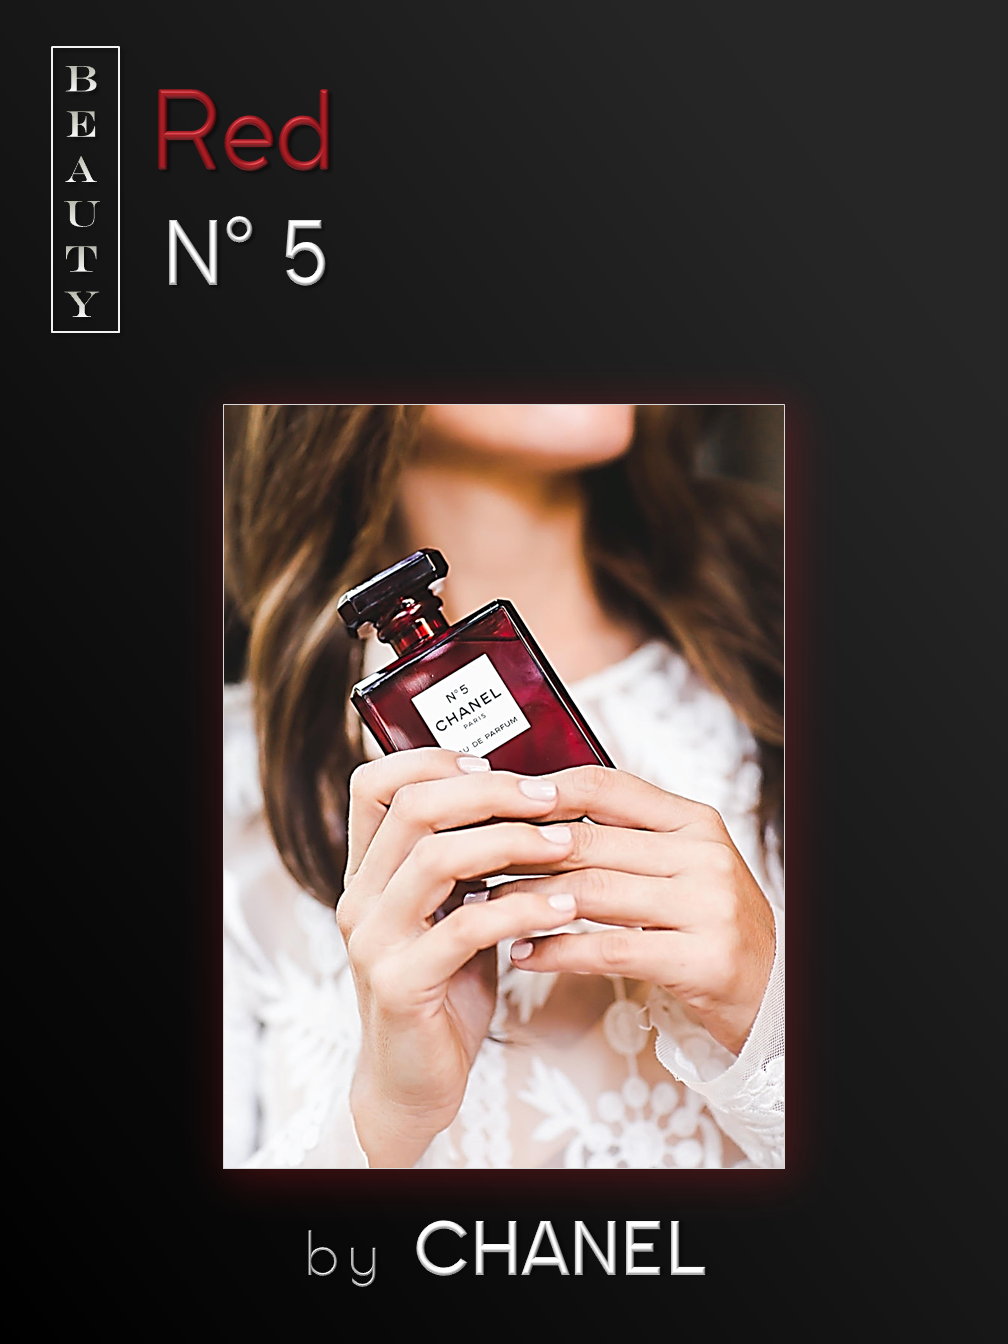 Red chanel No5